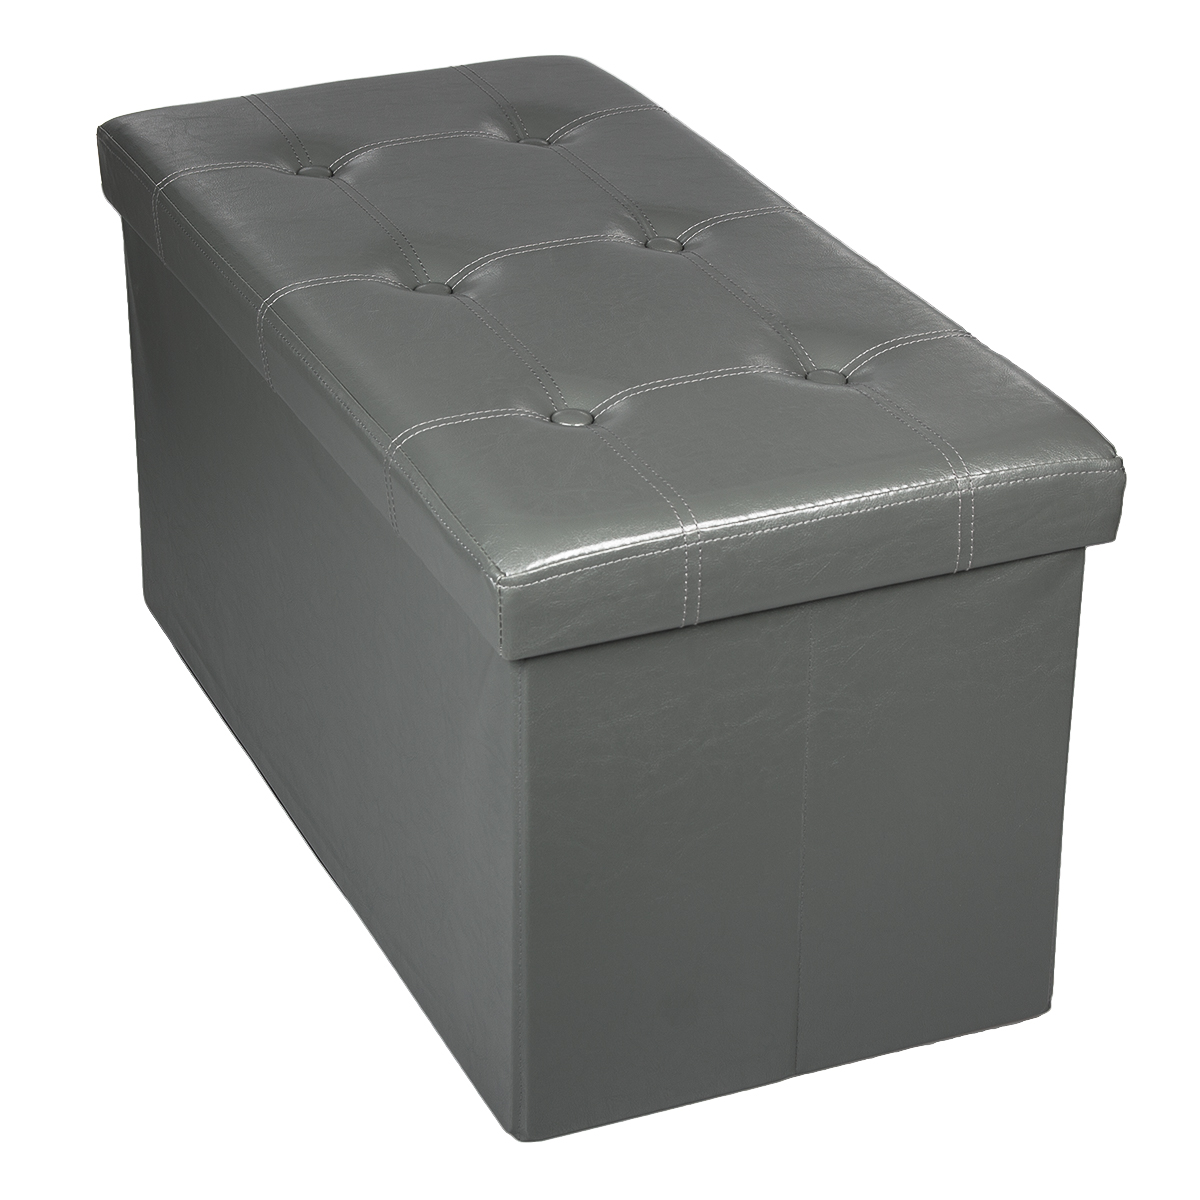 Storage Bench Ottoman Faux Leather Foldable Collapsible Foot Rest Coffee Table Ebay